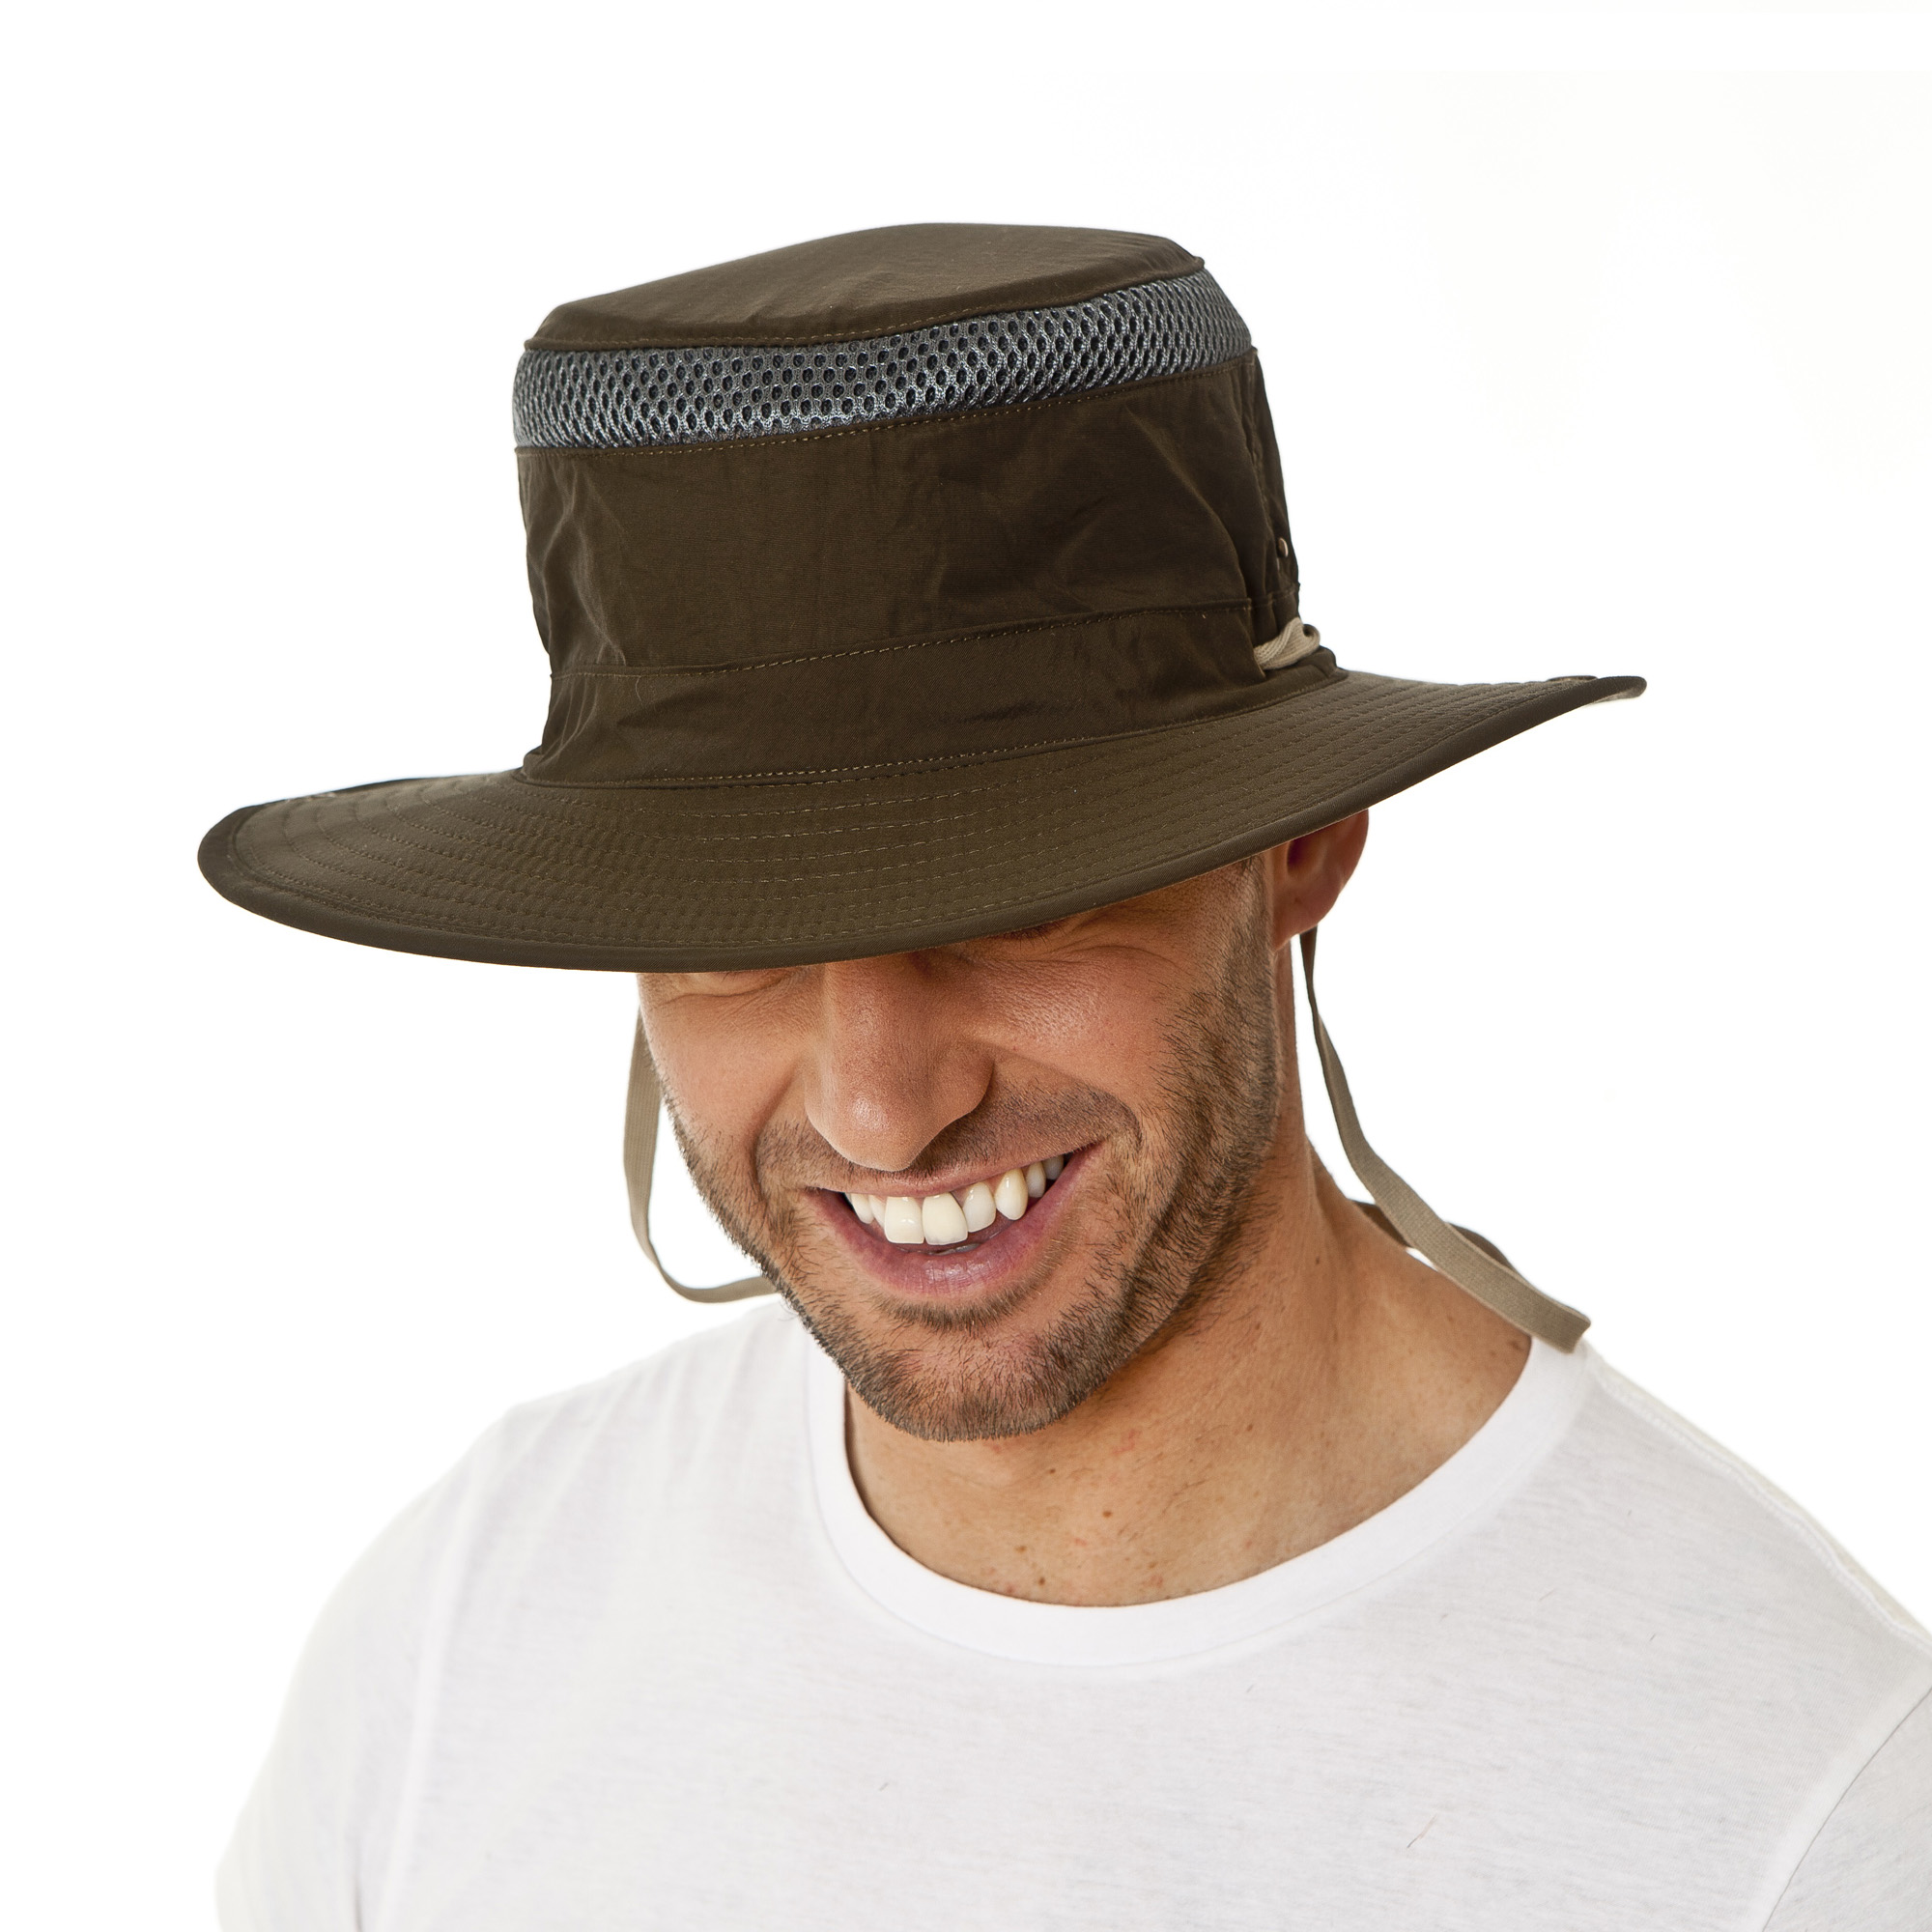 Details about i-Smalls Men s Summer Vented Wide Brim Bush Hat with Chin  Strap 2425f86f979